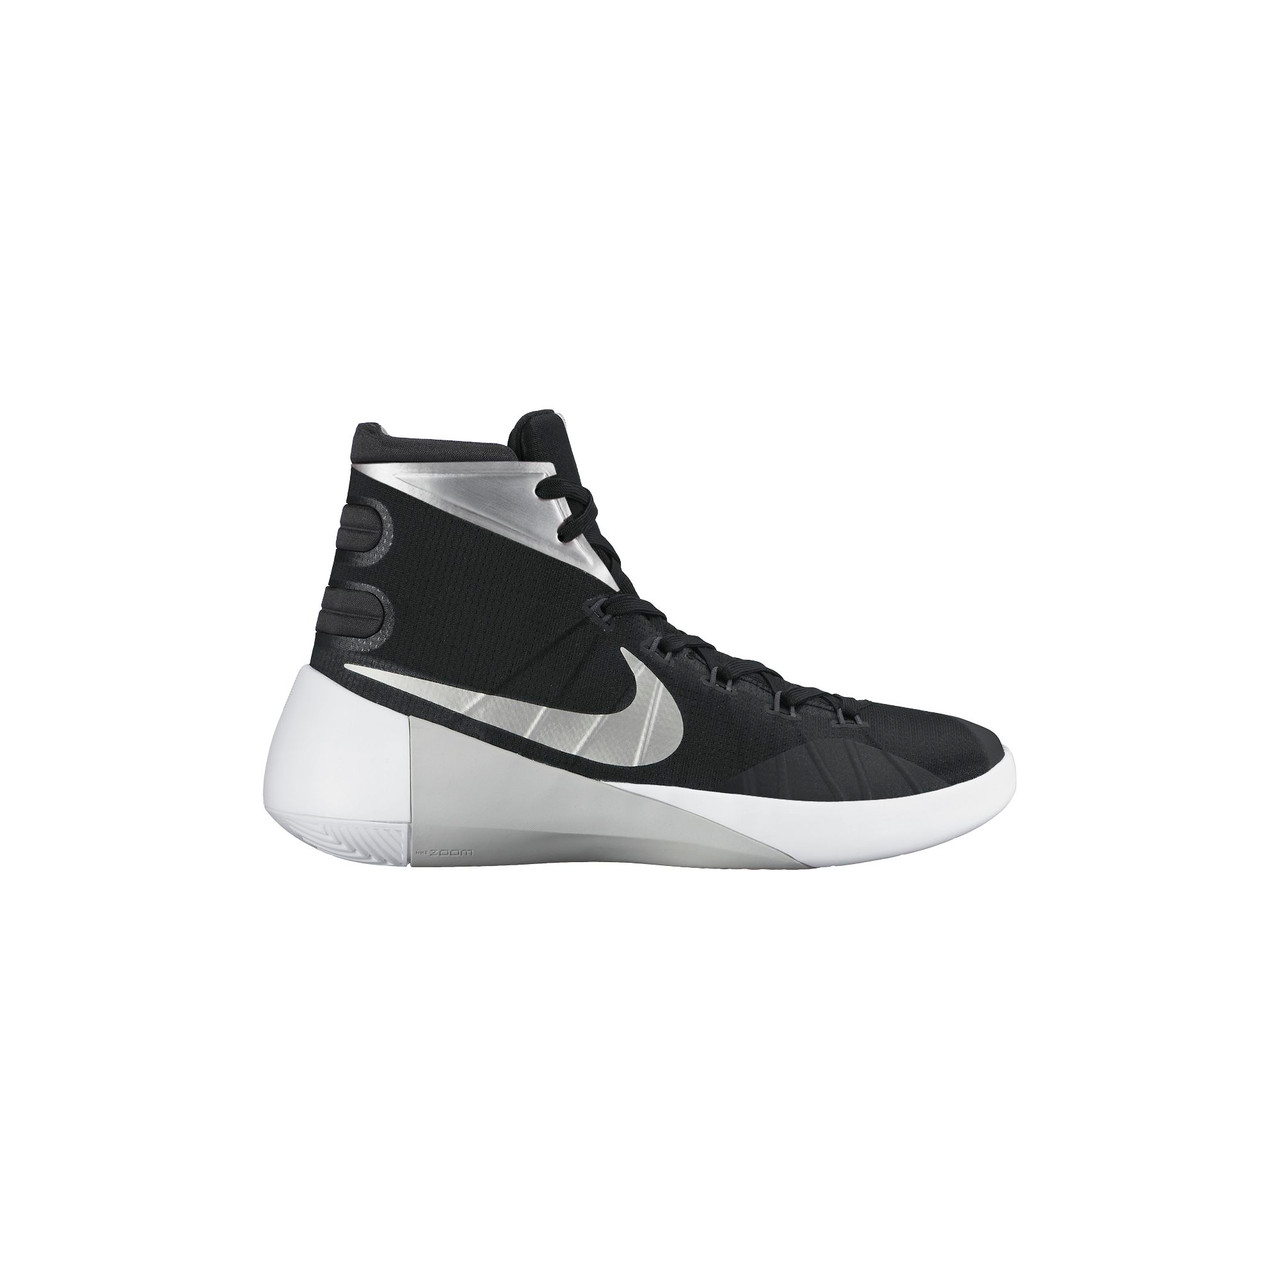 Todo el tiempo Invertir películas  Women's Nike Hyperdunk 2015 Team Basketball Shoe - Sieverts Sporting Goods